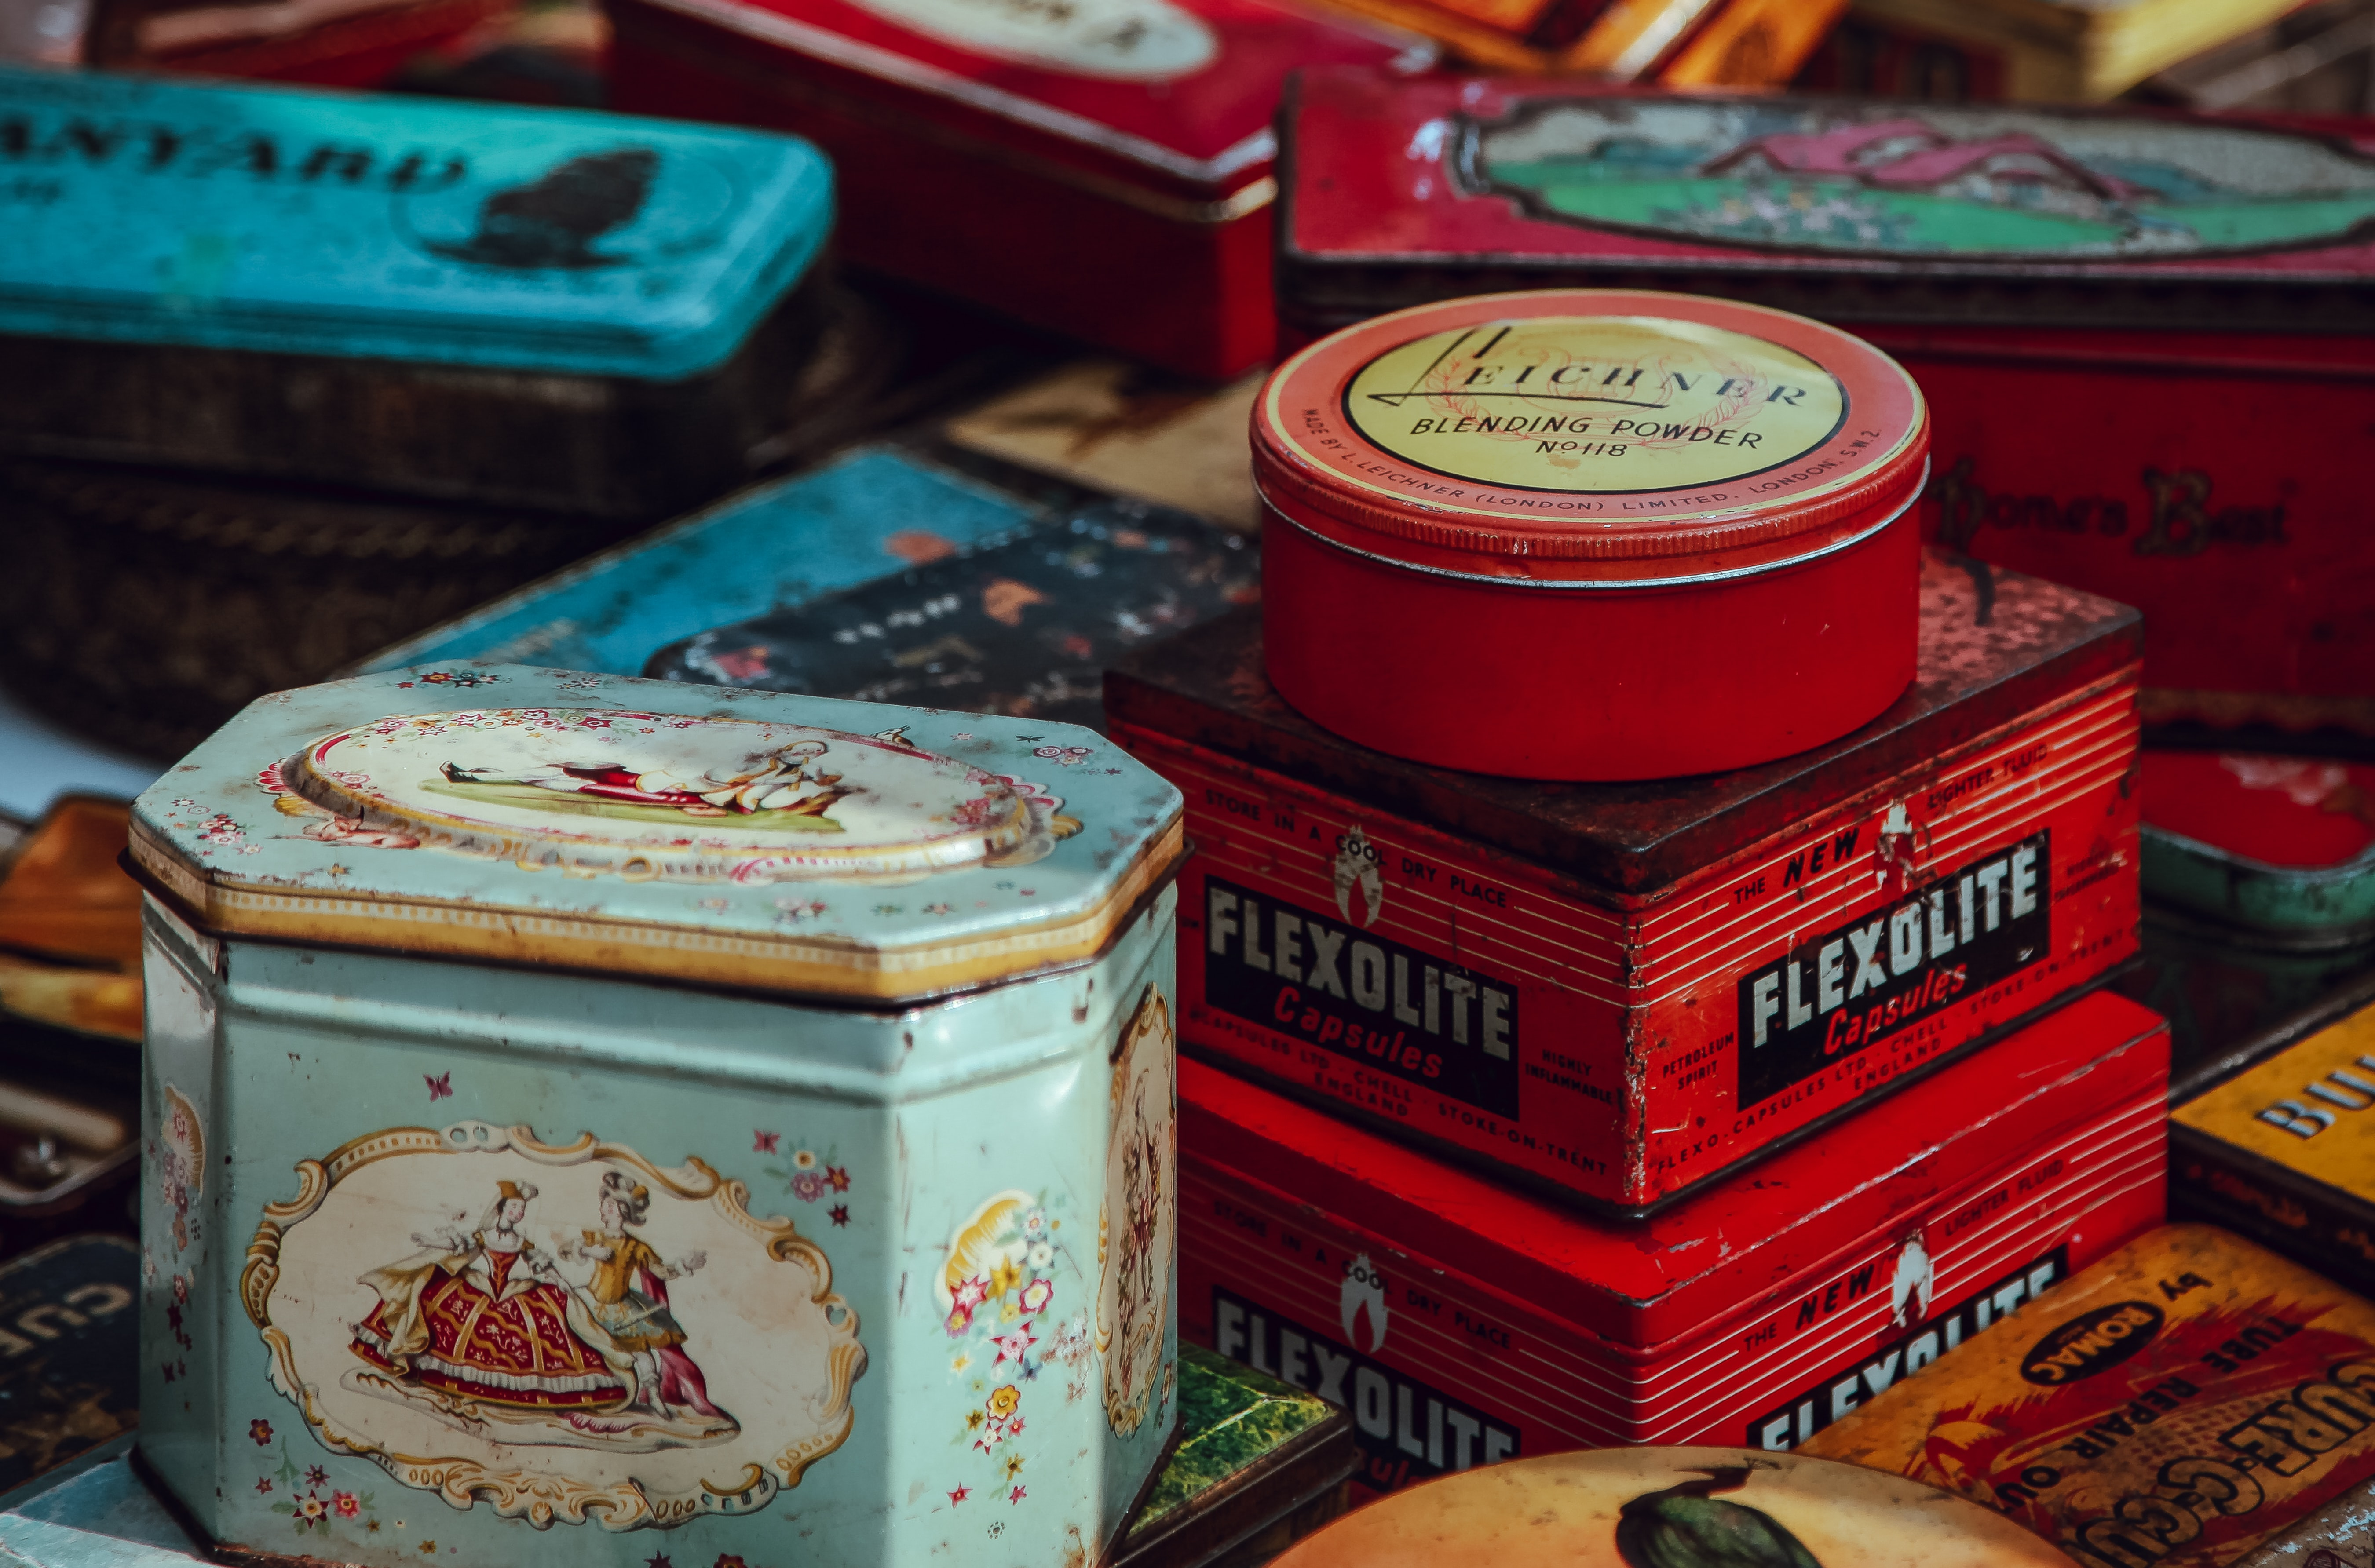 Old stuff packaged in tin and boxes stacked together in a flea market at lewis cubits square.